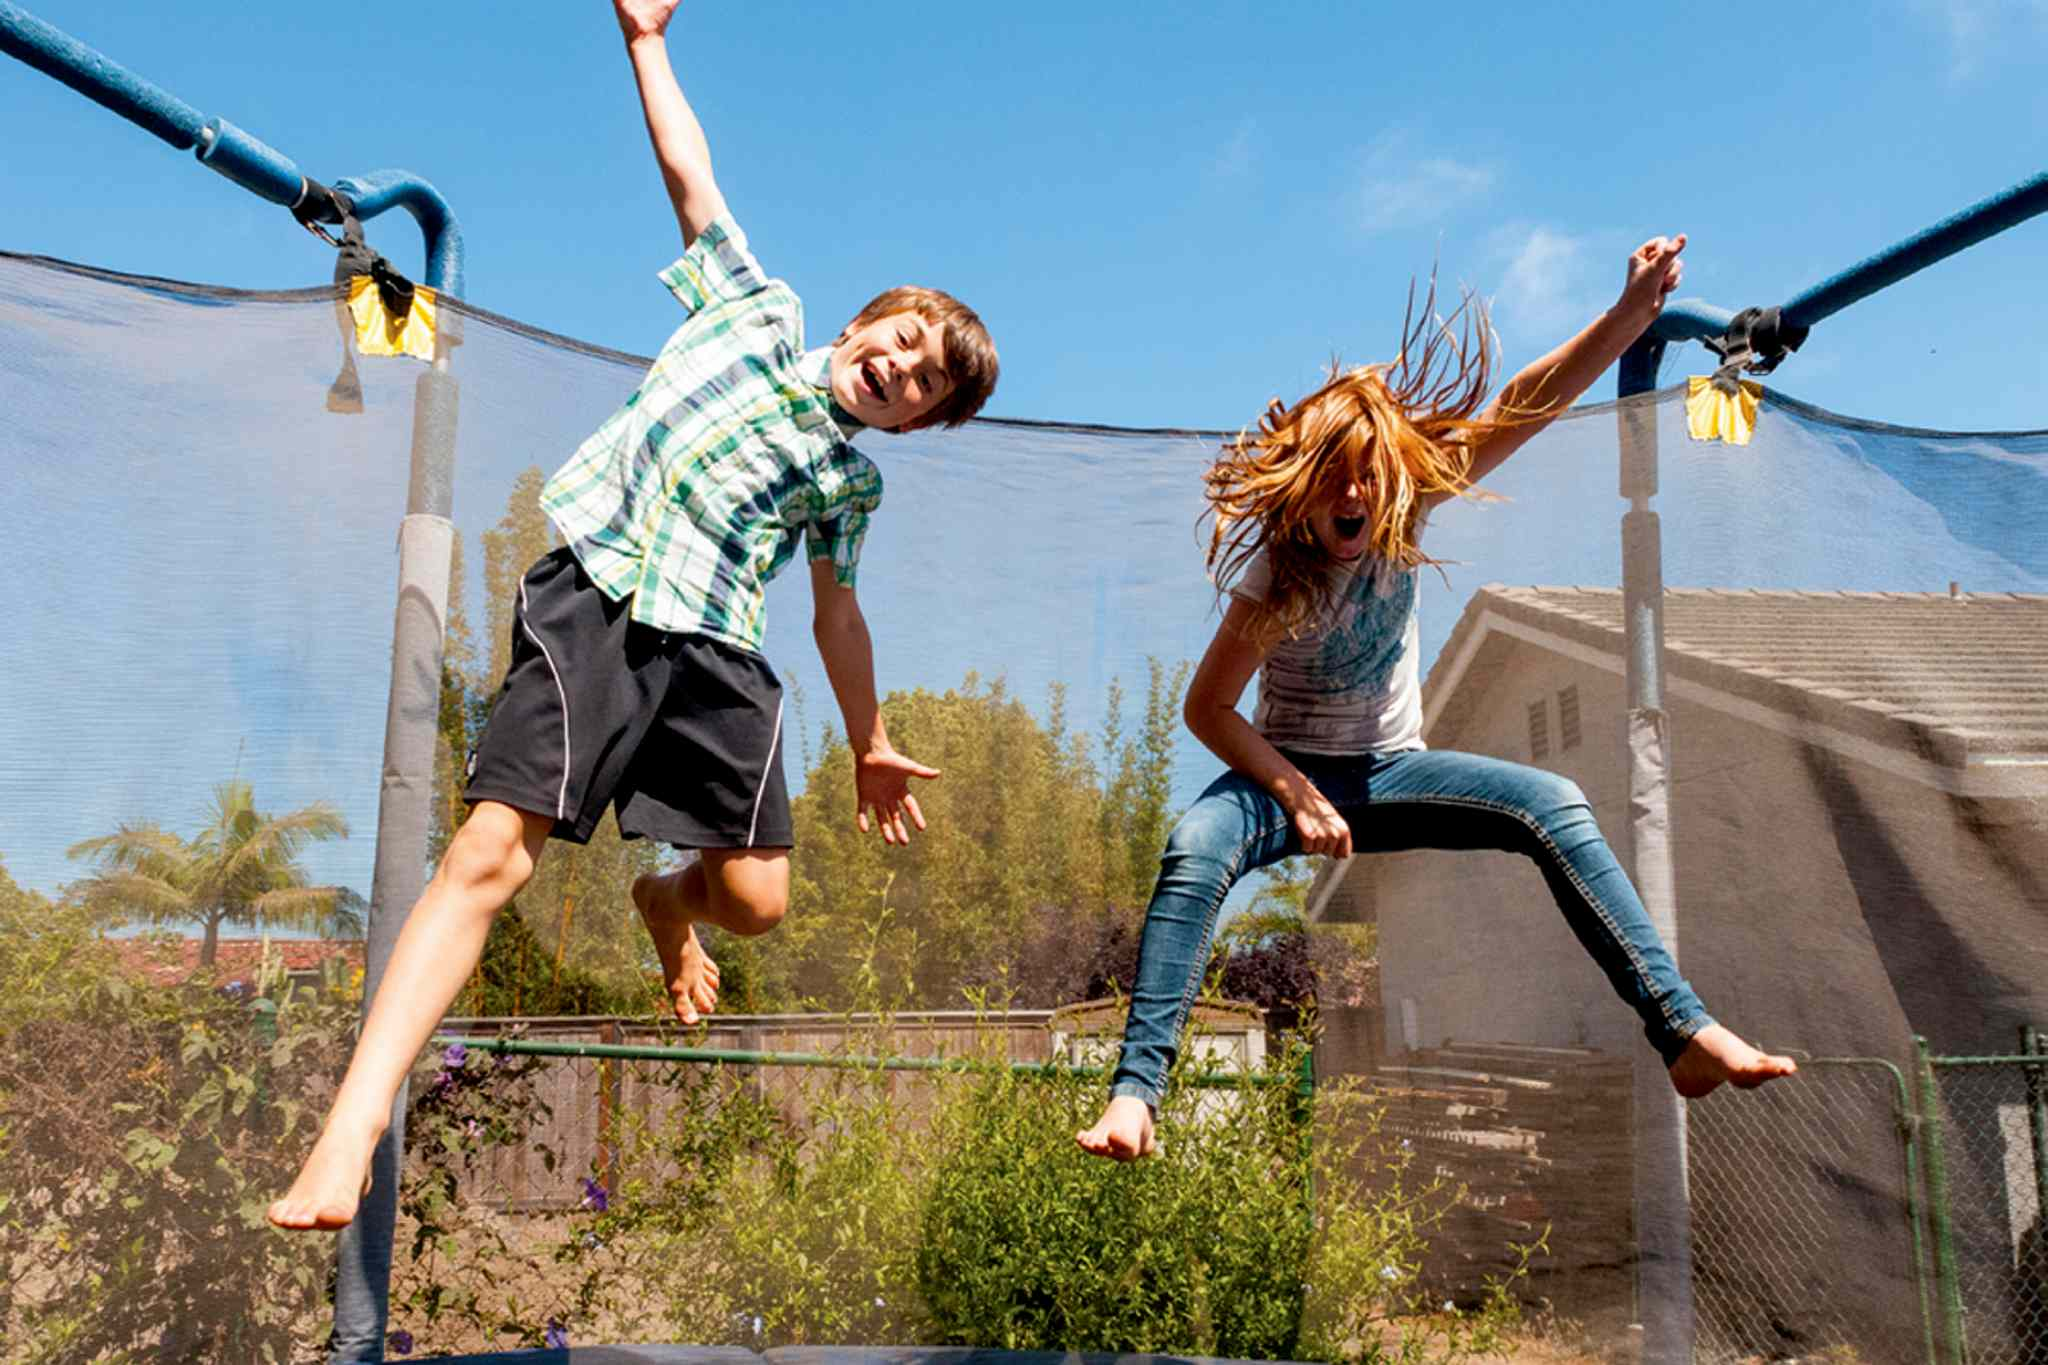 Much is said about the value of play for kids, but what about adults? Grown-ups need to get out and move for fun too.